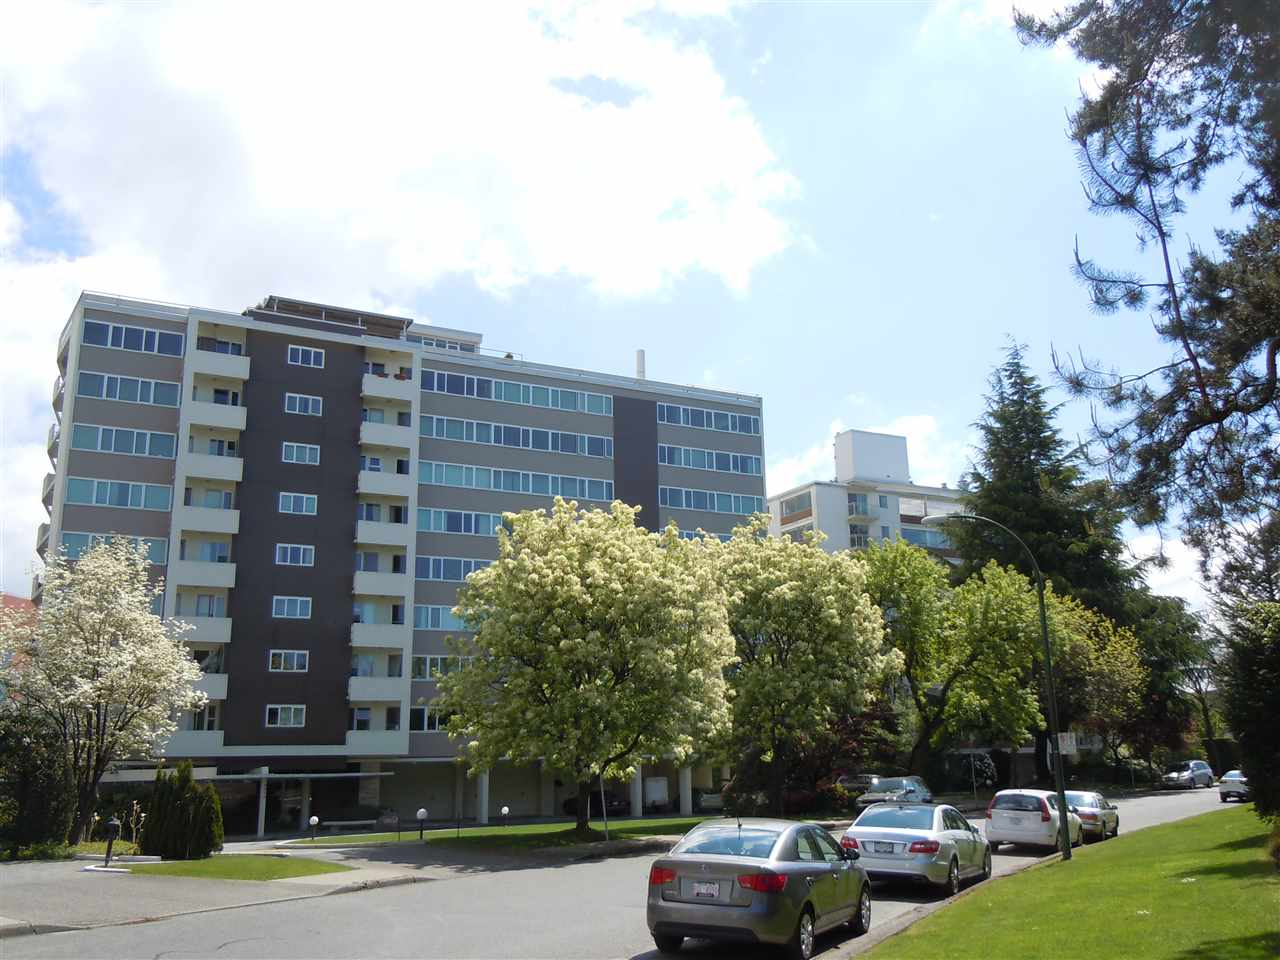 "Main Photo: 504 6026 TISDALL ST in Vancouver: Oakridge VW Condo for sale in ""Oakridge Towers"" (Vancouver West)  : MLS®# R2021576"